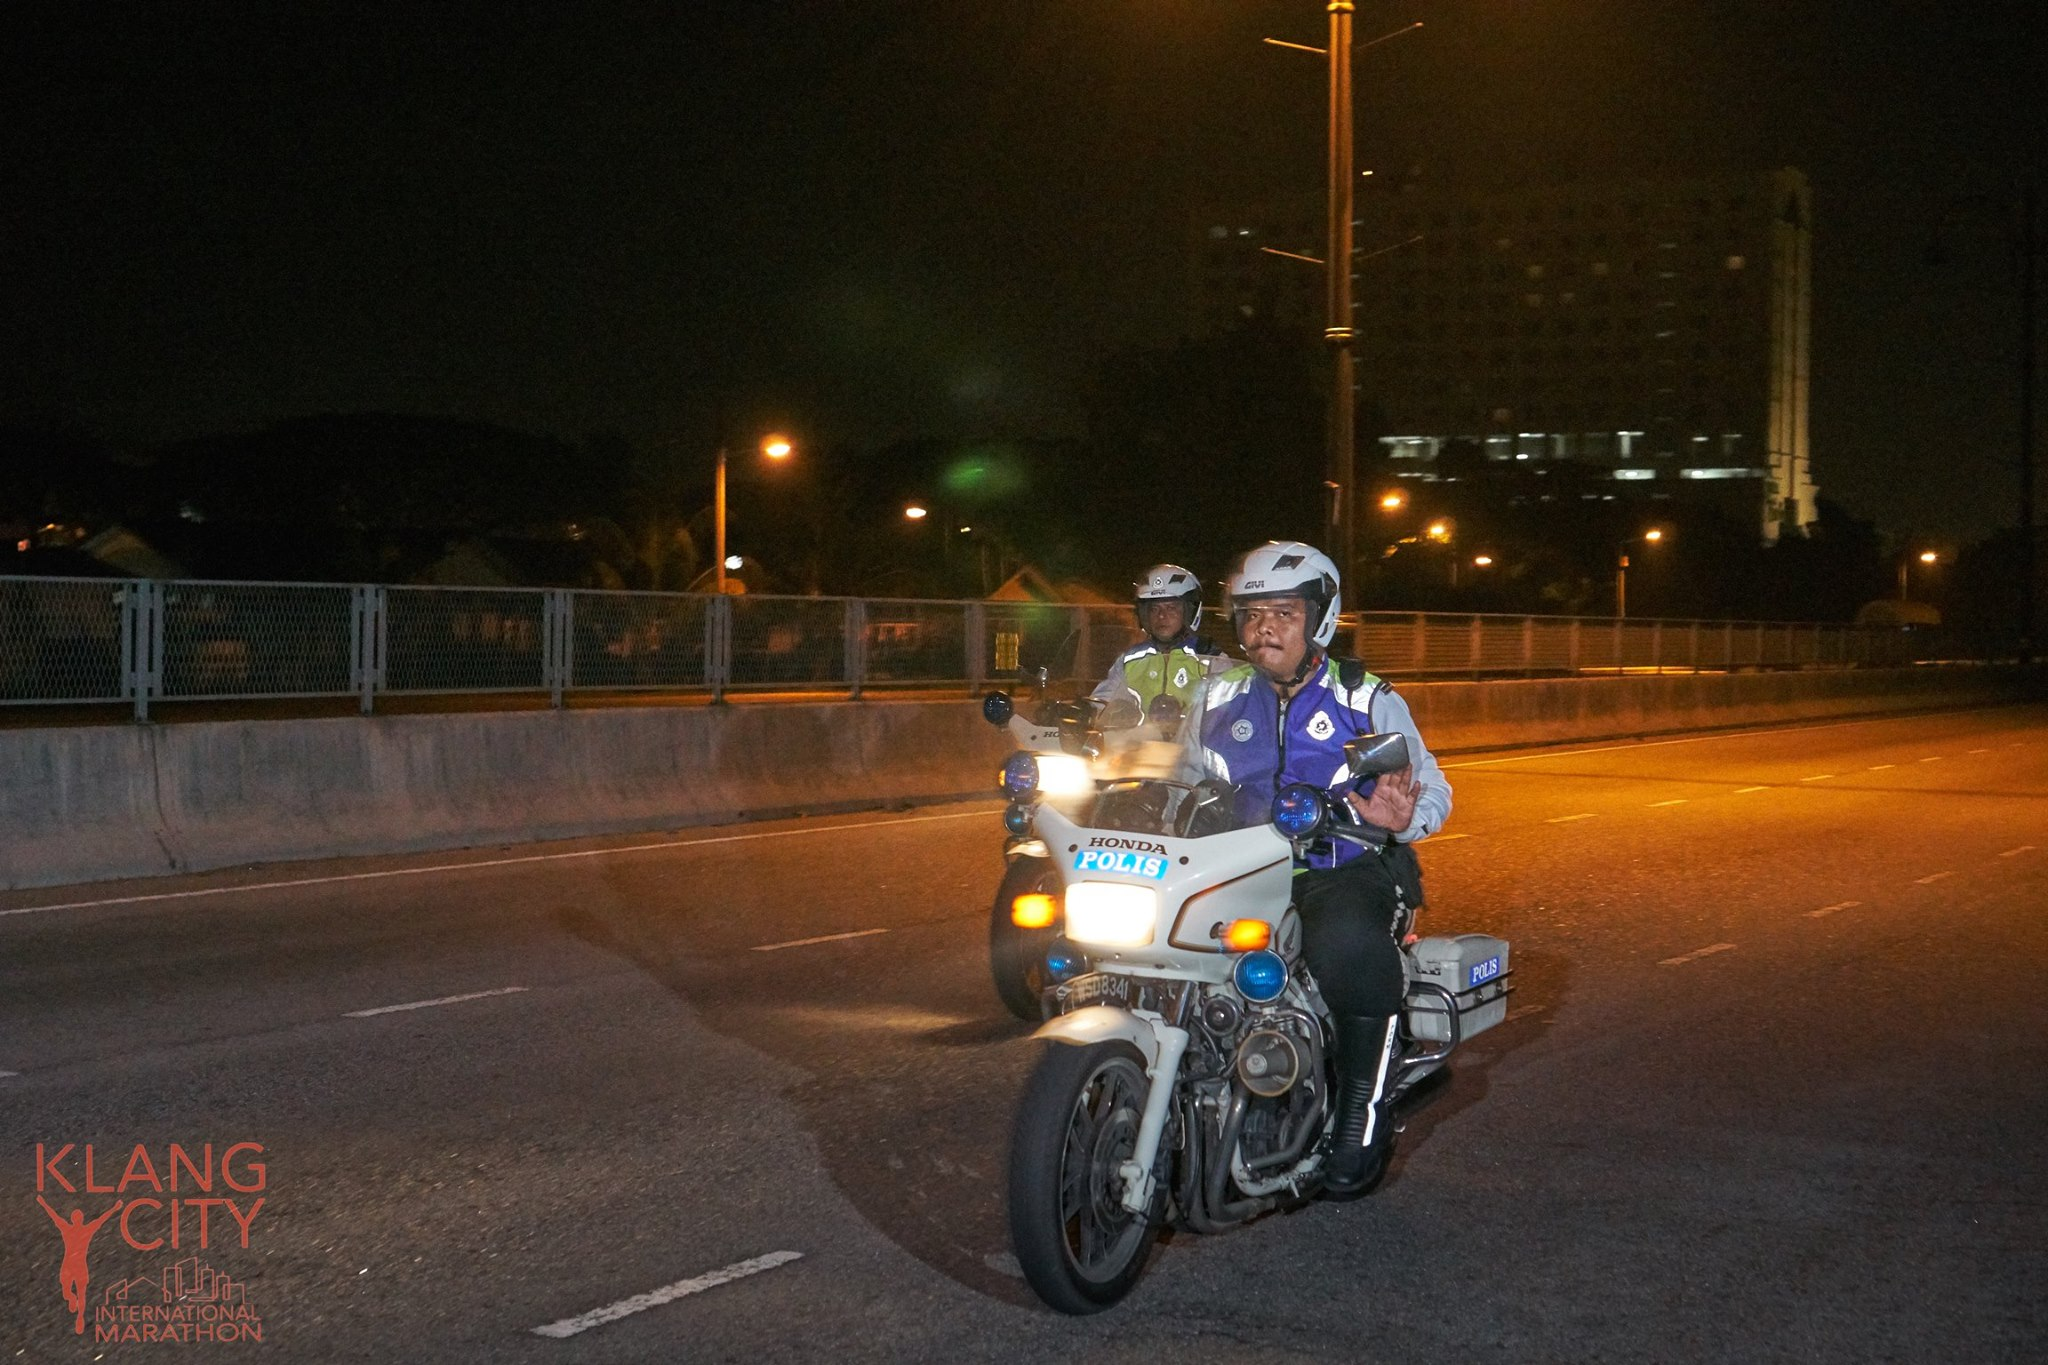 Police patrolling the event route. Img from Says.